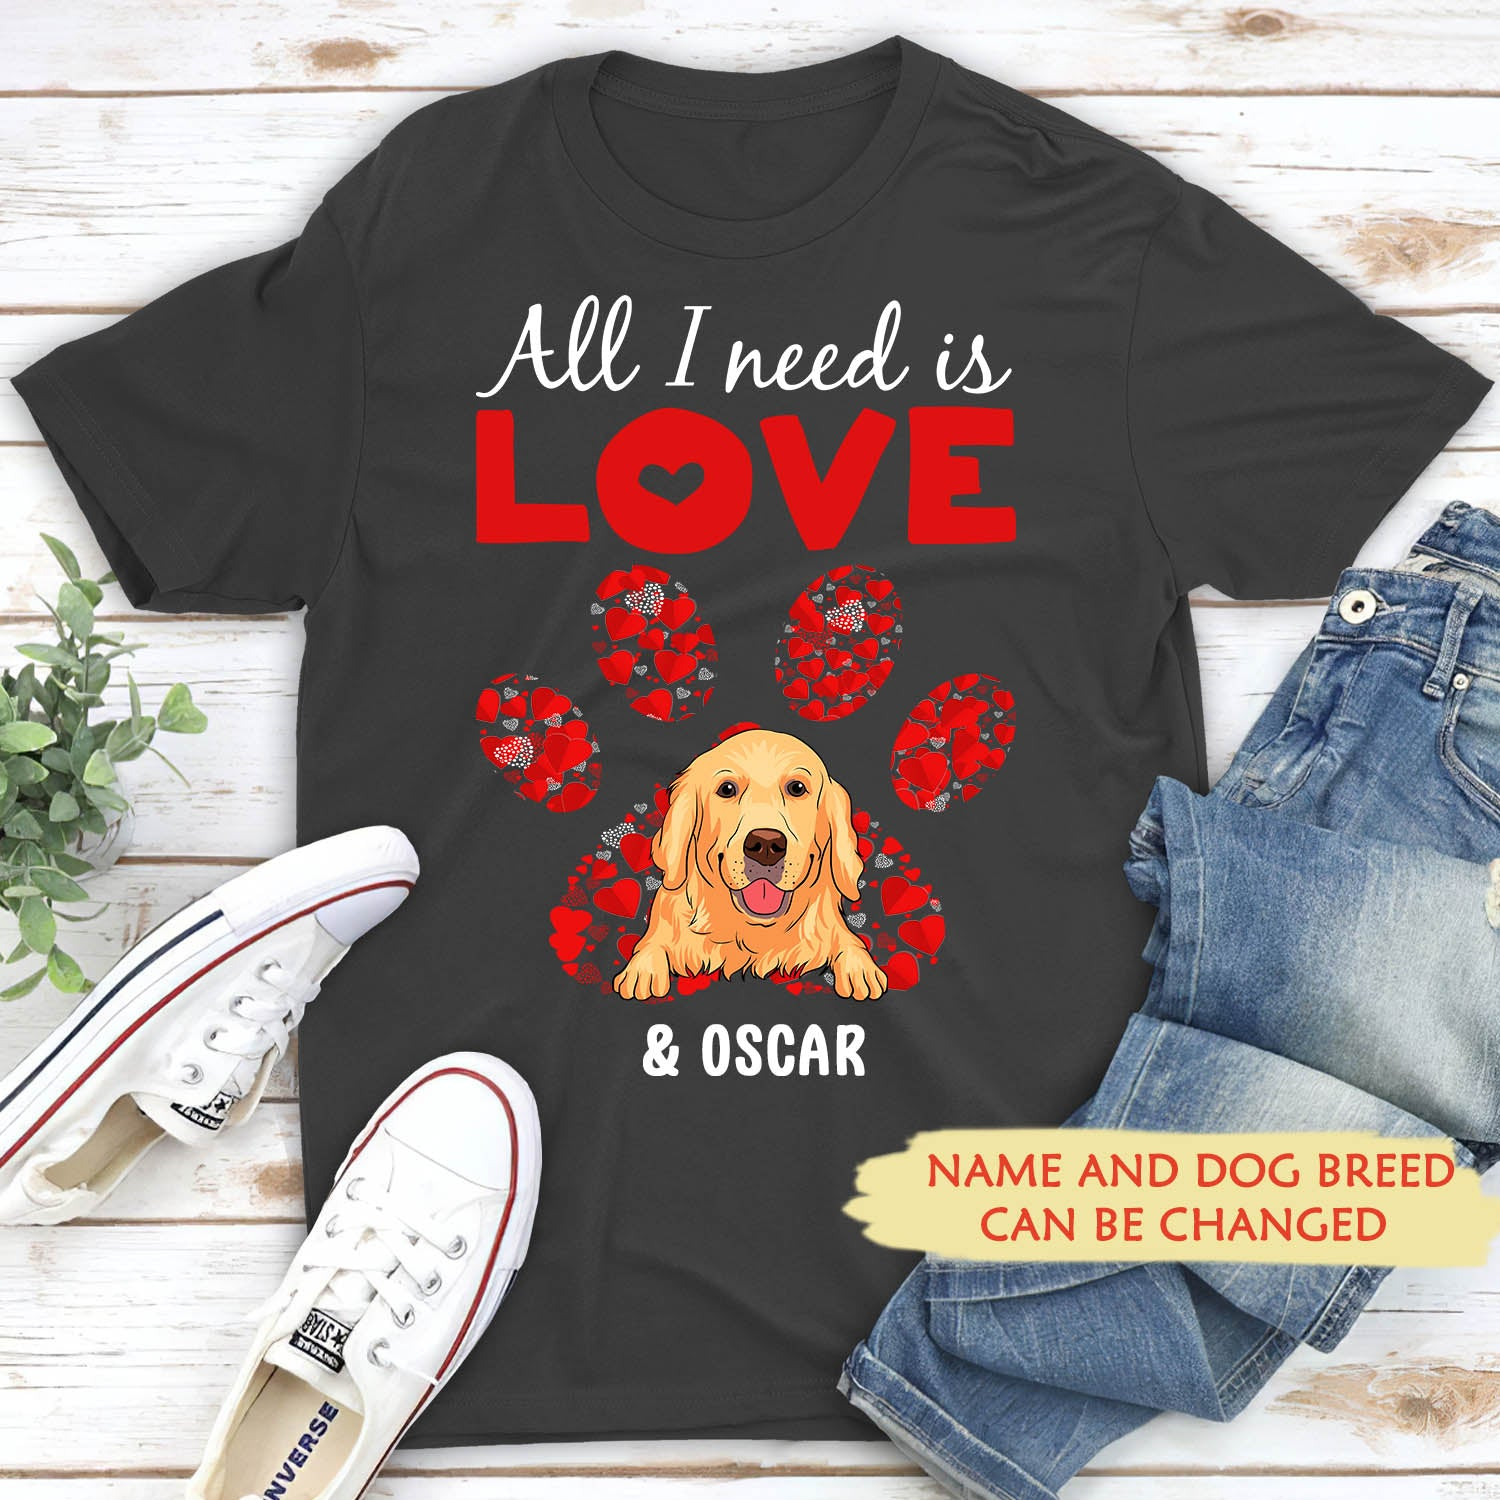 All I need - Personalized custom premium T-shirt